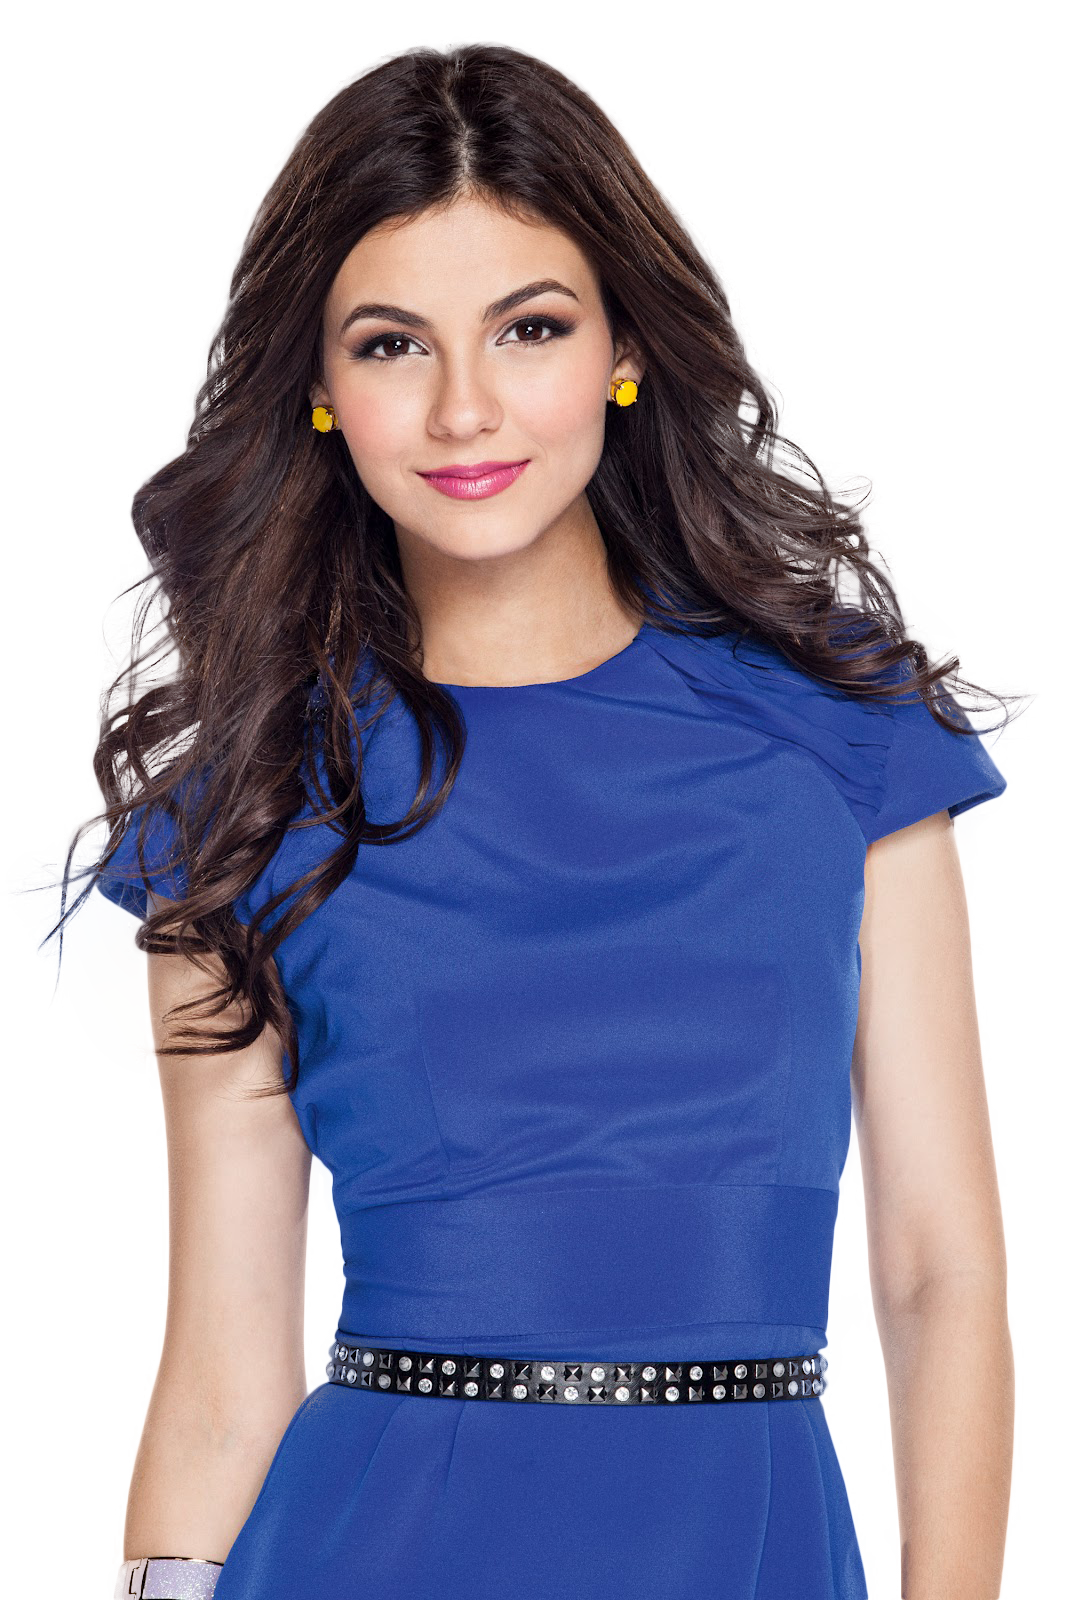 Victoria Justice Free Png Image PNG Image